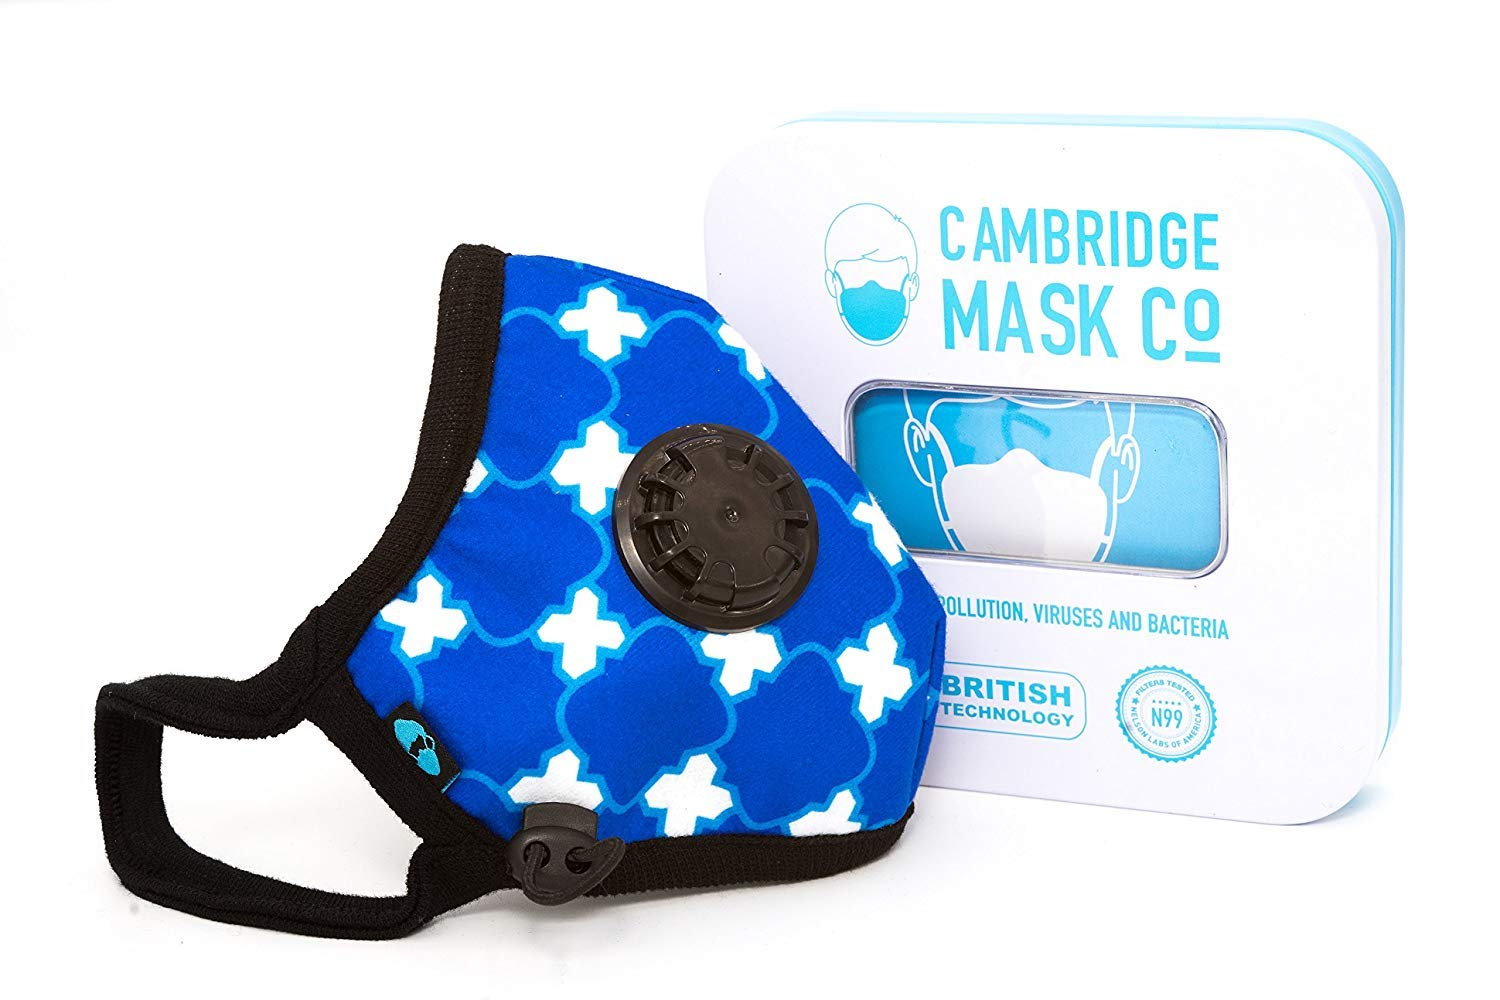 Cambridge Mask Co Pro Anti Pollution N99 Washable Military Grade Respirator with Adjustable Straps - Wedgewood S Pro by Cambridge Mask Co (Image #3)